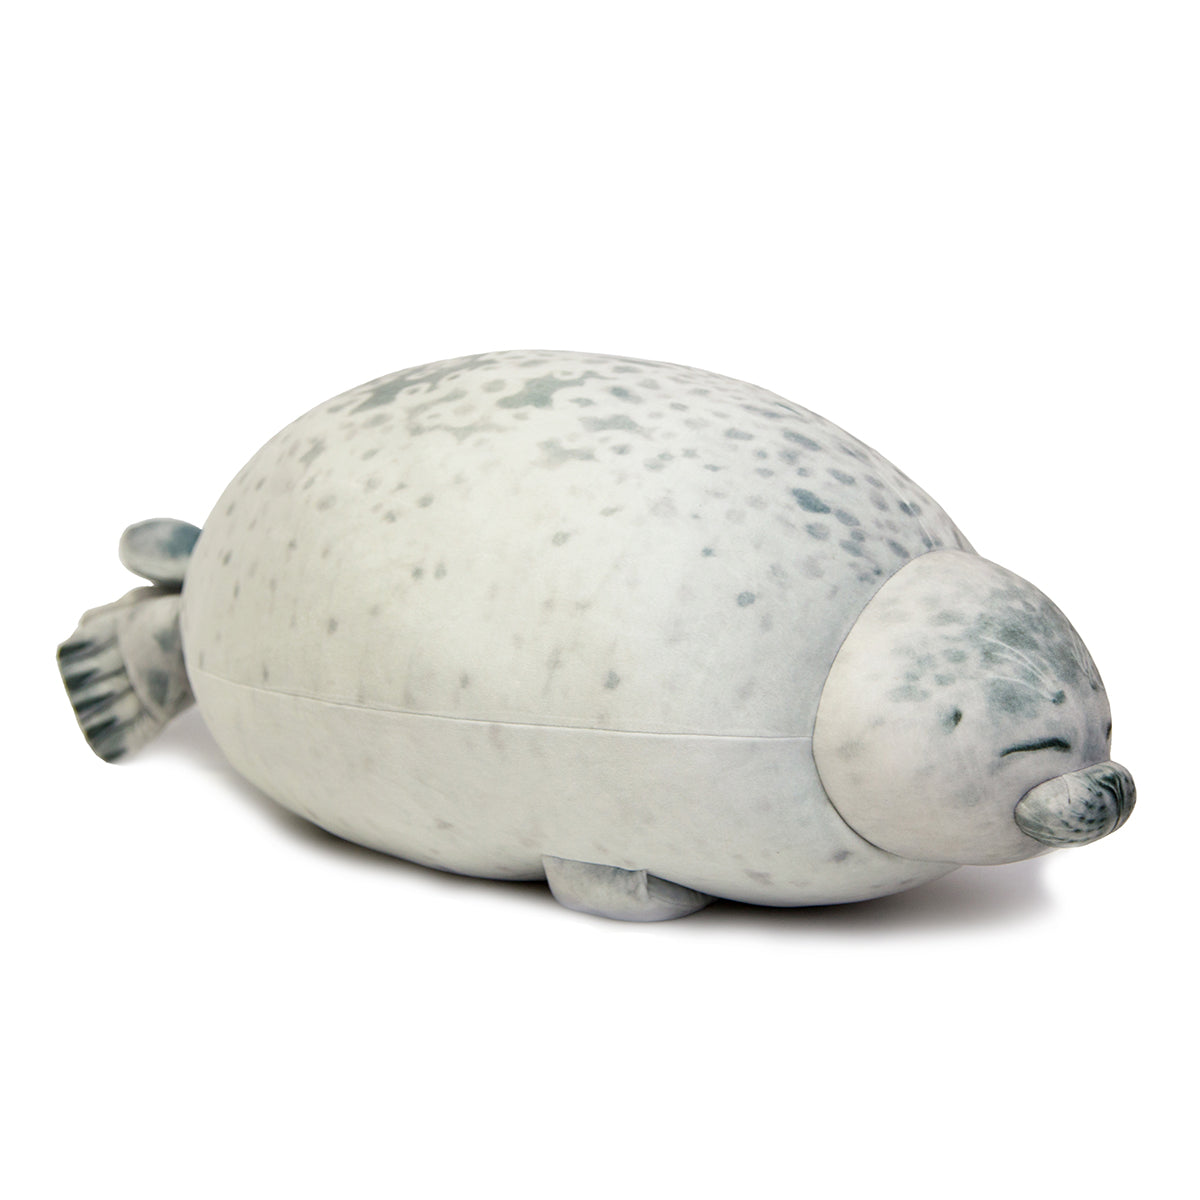 Chubby Angry Seal Pillow Plush 3D Stuffed Animal (2 Colors)